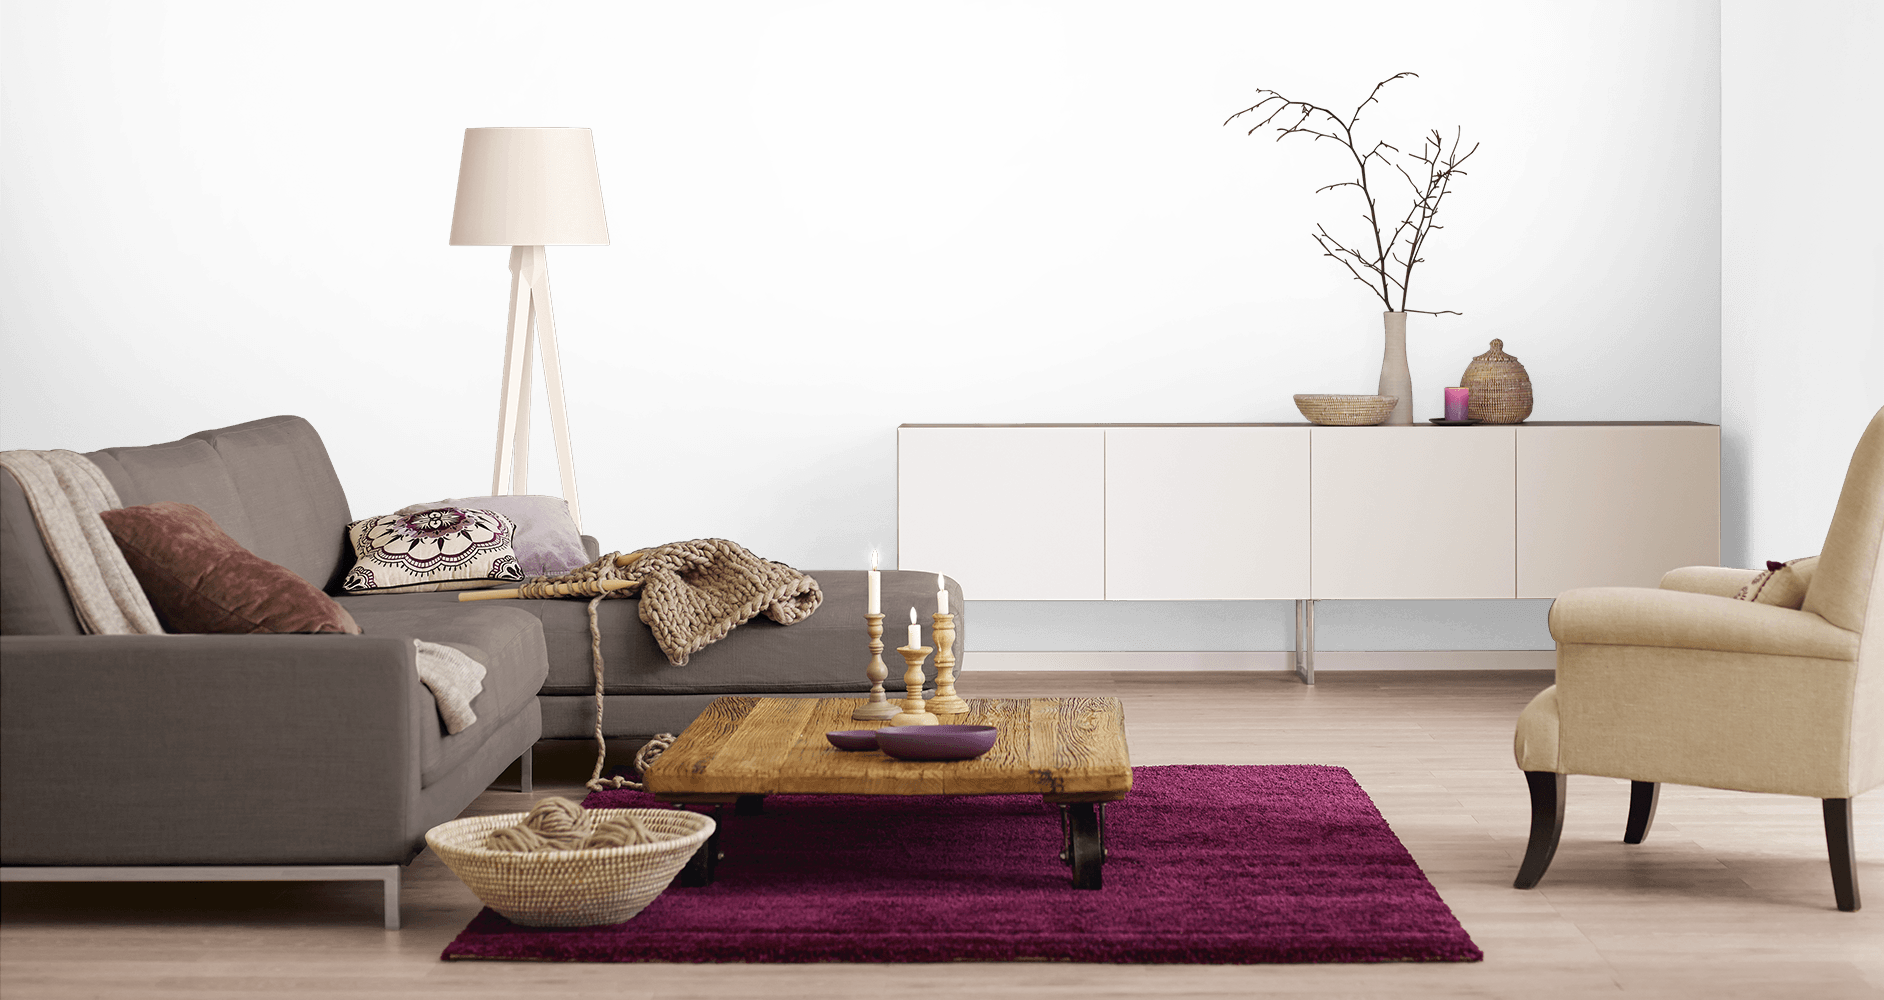 kreative farbgestaltung in r umen alpina farbrezepte und effektfarben. Black Bedroom Furniture Sets. Home Design Ideas